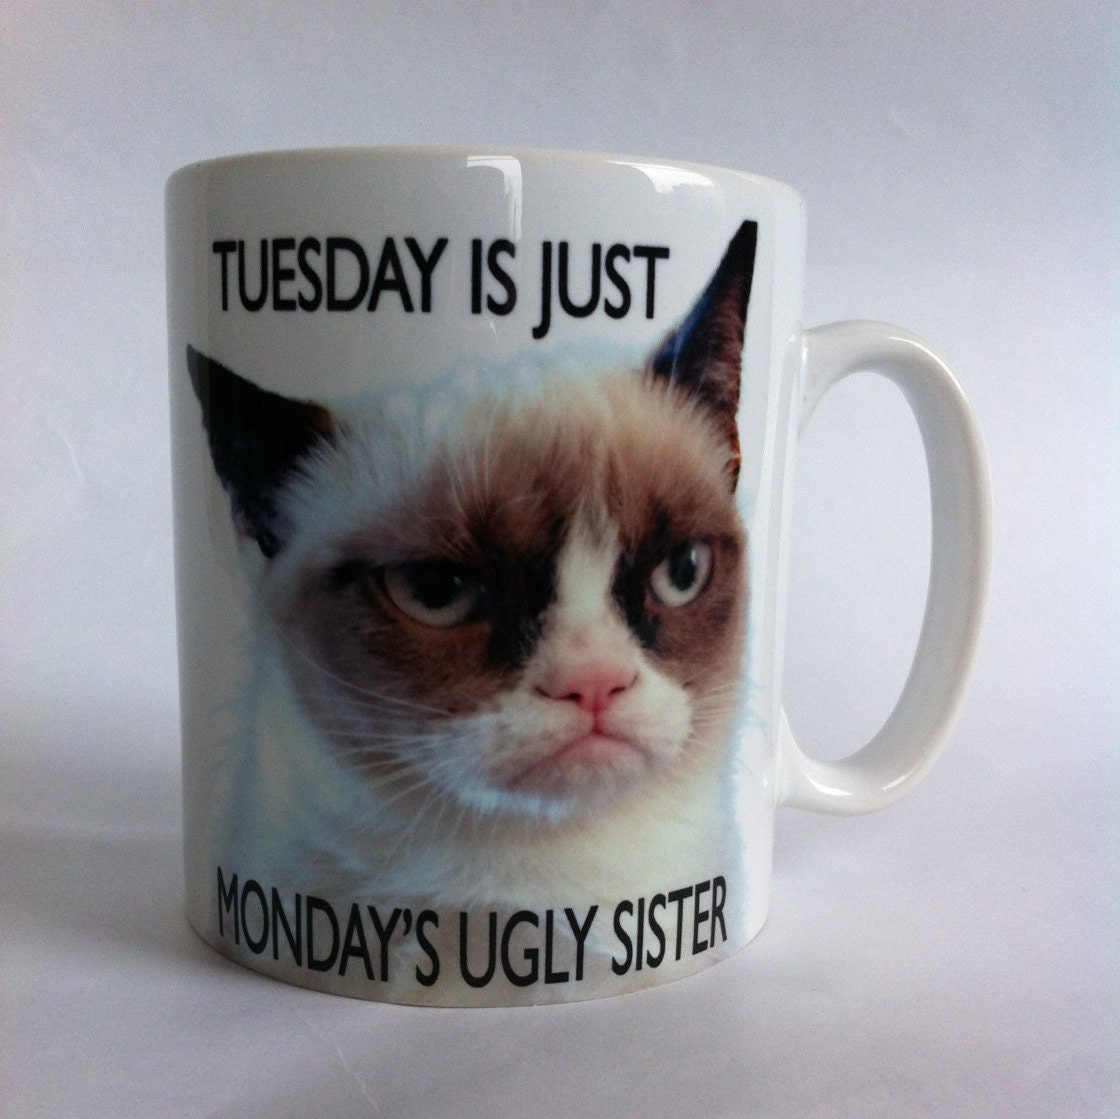 Ugly Birthday Cat: Grumpy Cat Tuesday Is Just Monday's Ugly Sister Mugs